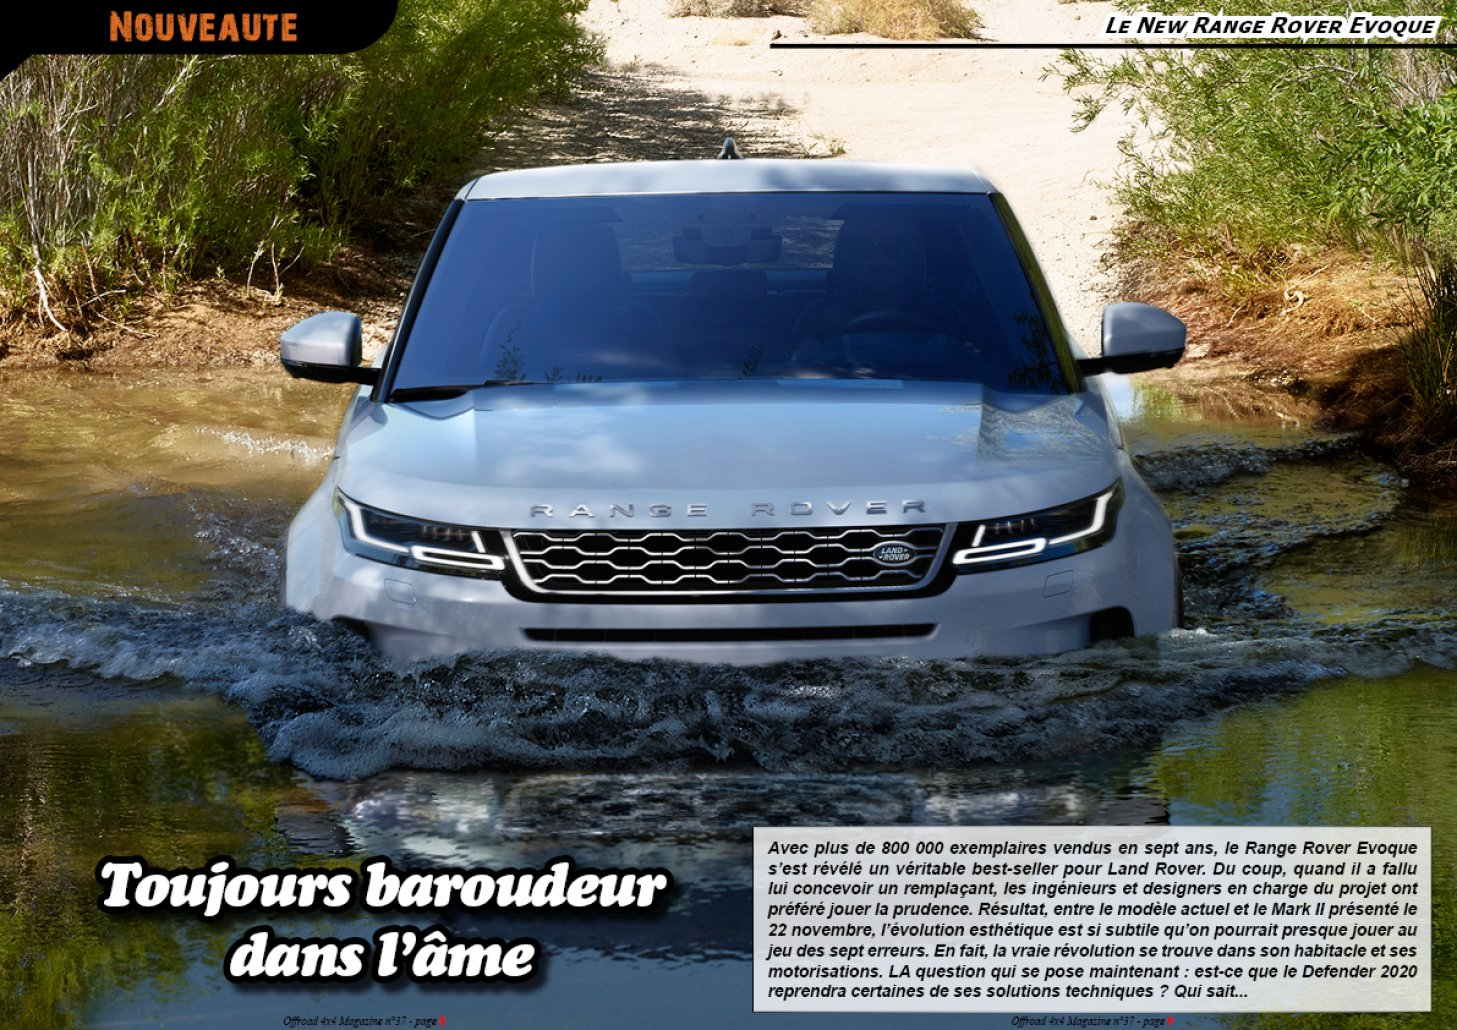 Le New Range Rover Evoque